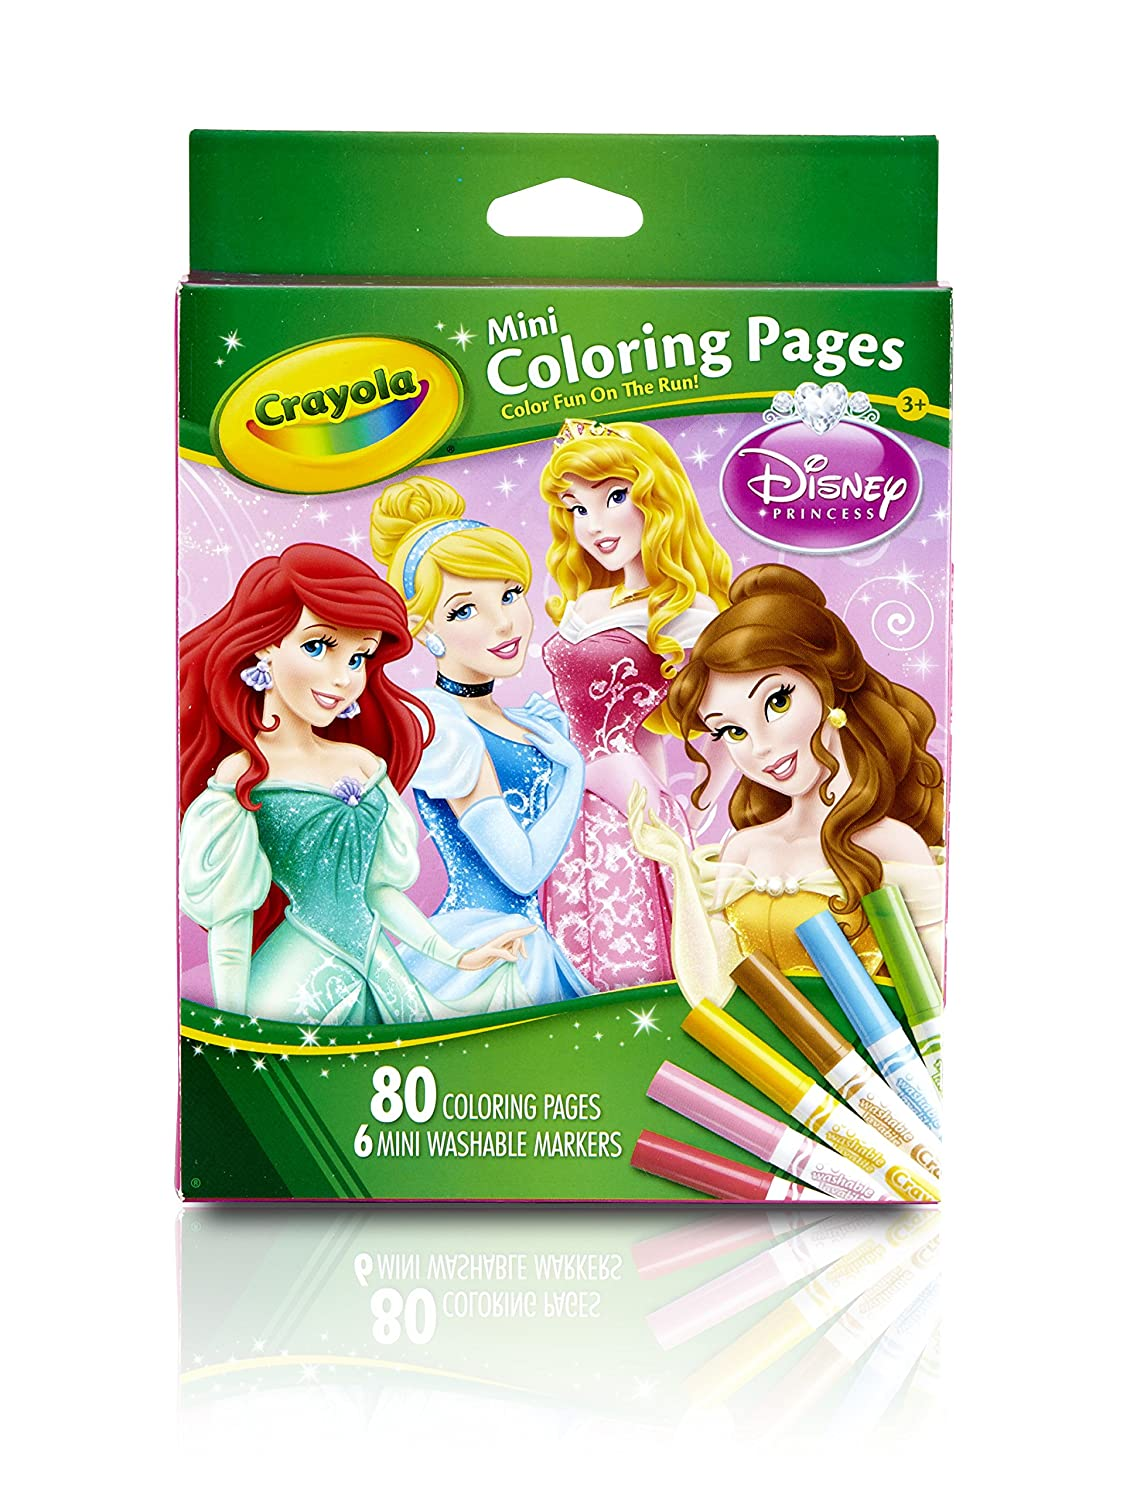 amazoncom crayola crayola mini coloring pages disney princess toy toys games